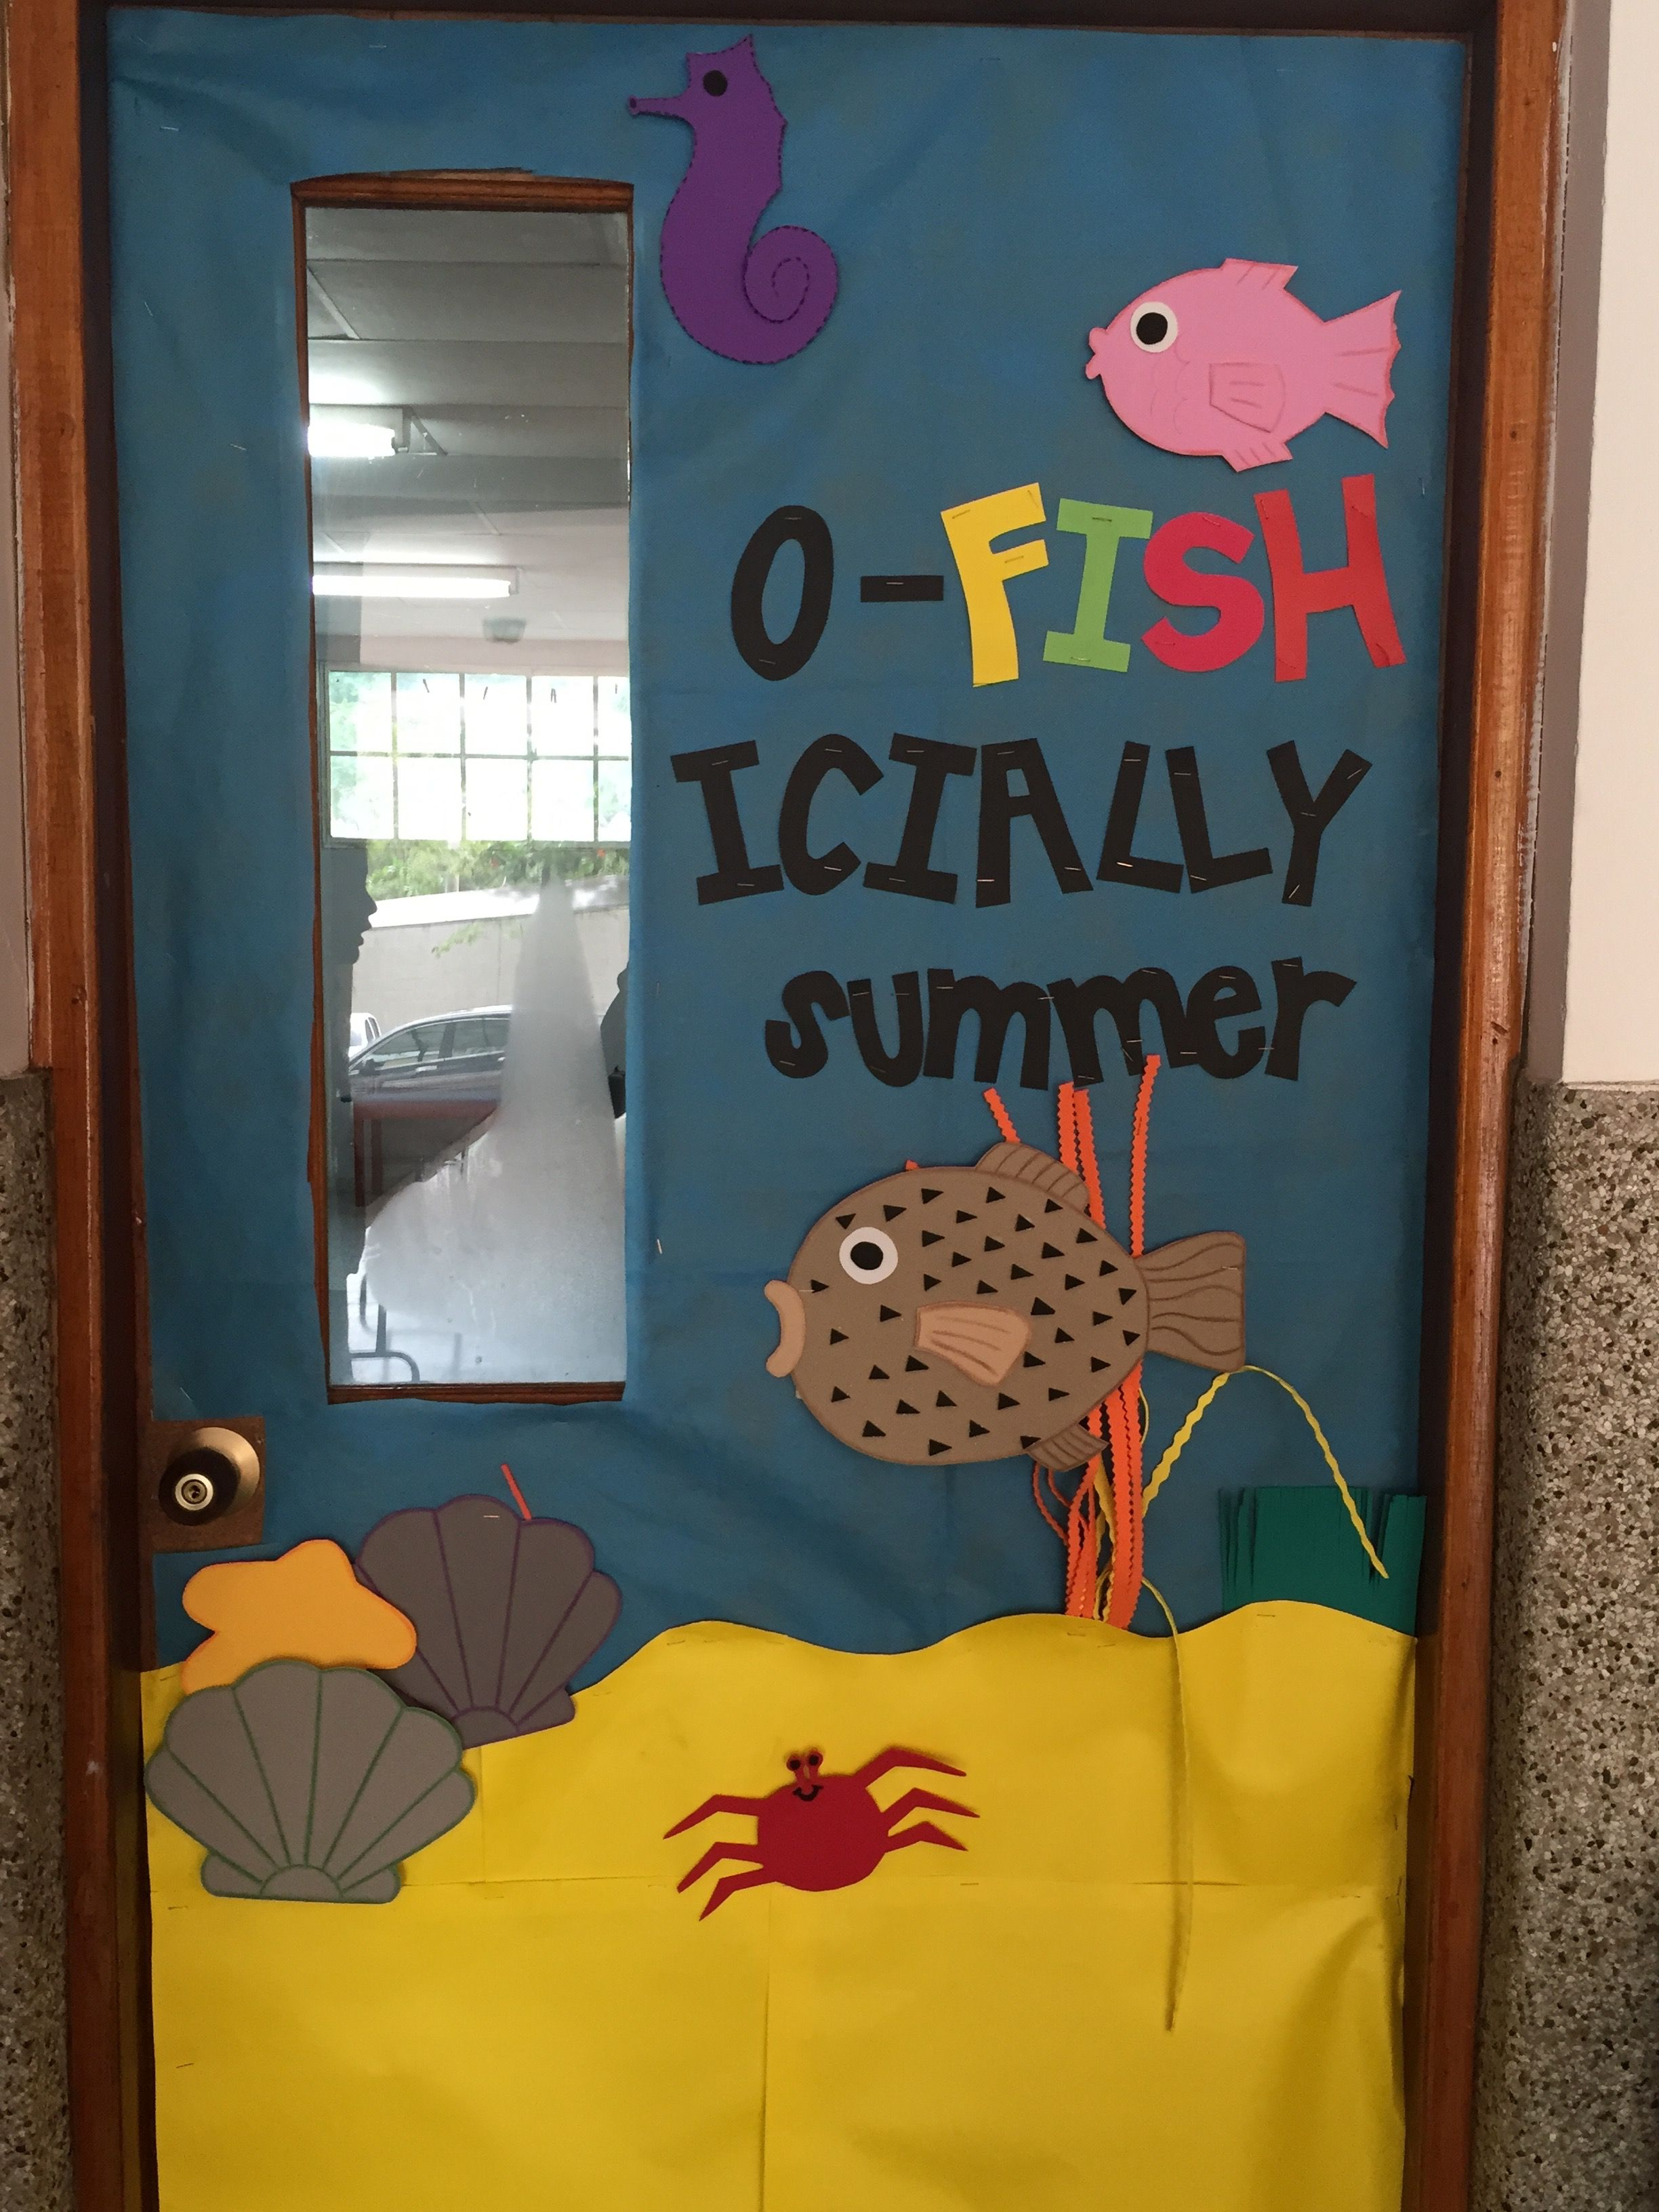 Cartoon classroom door - Oficially On Vacations Classroom Door Ofishially Summer Classroom Door Farewell Classroom Door Sea Classroom Door